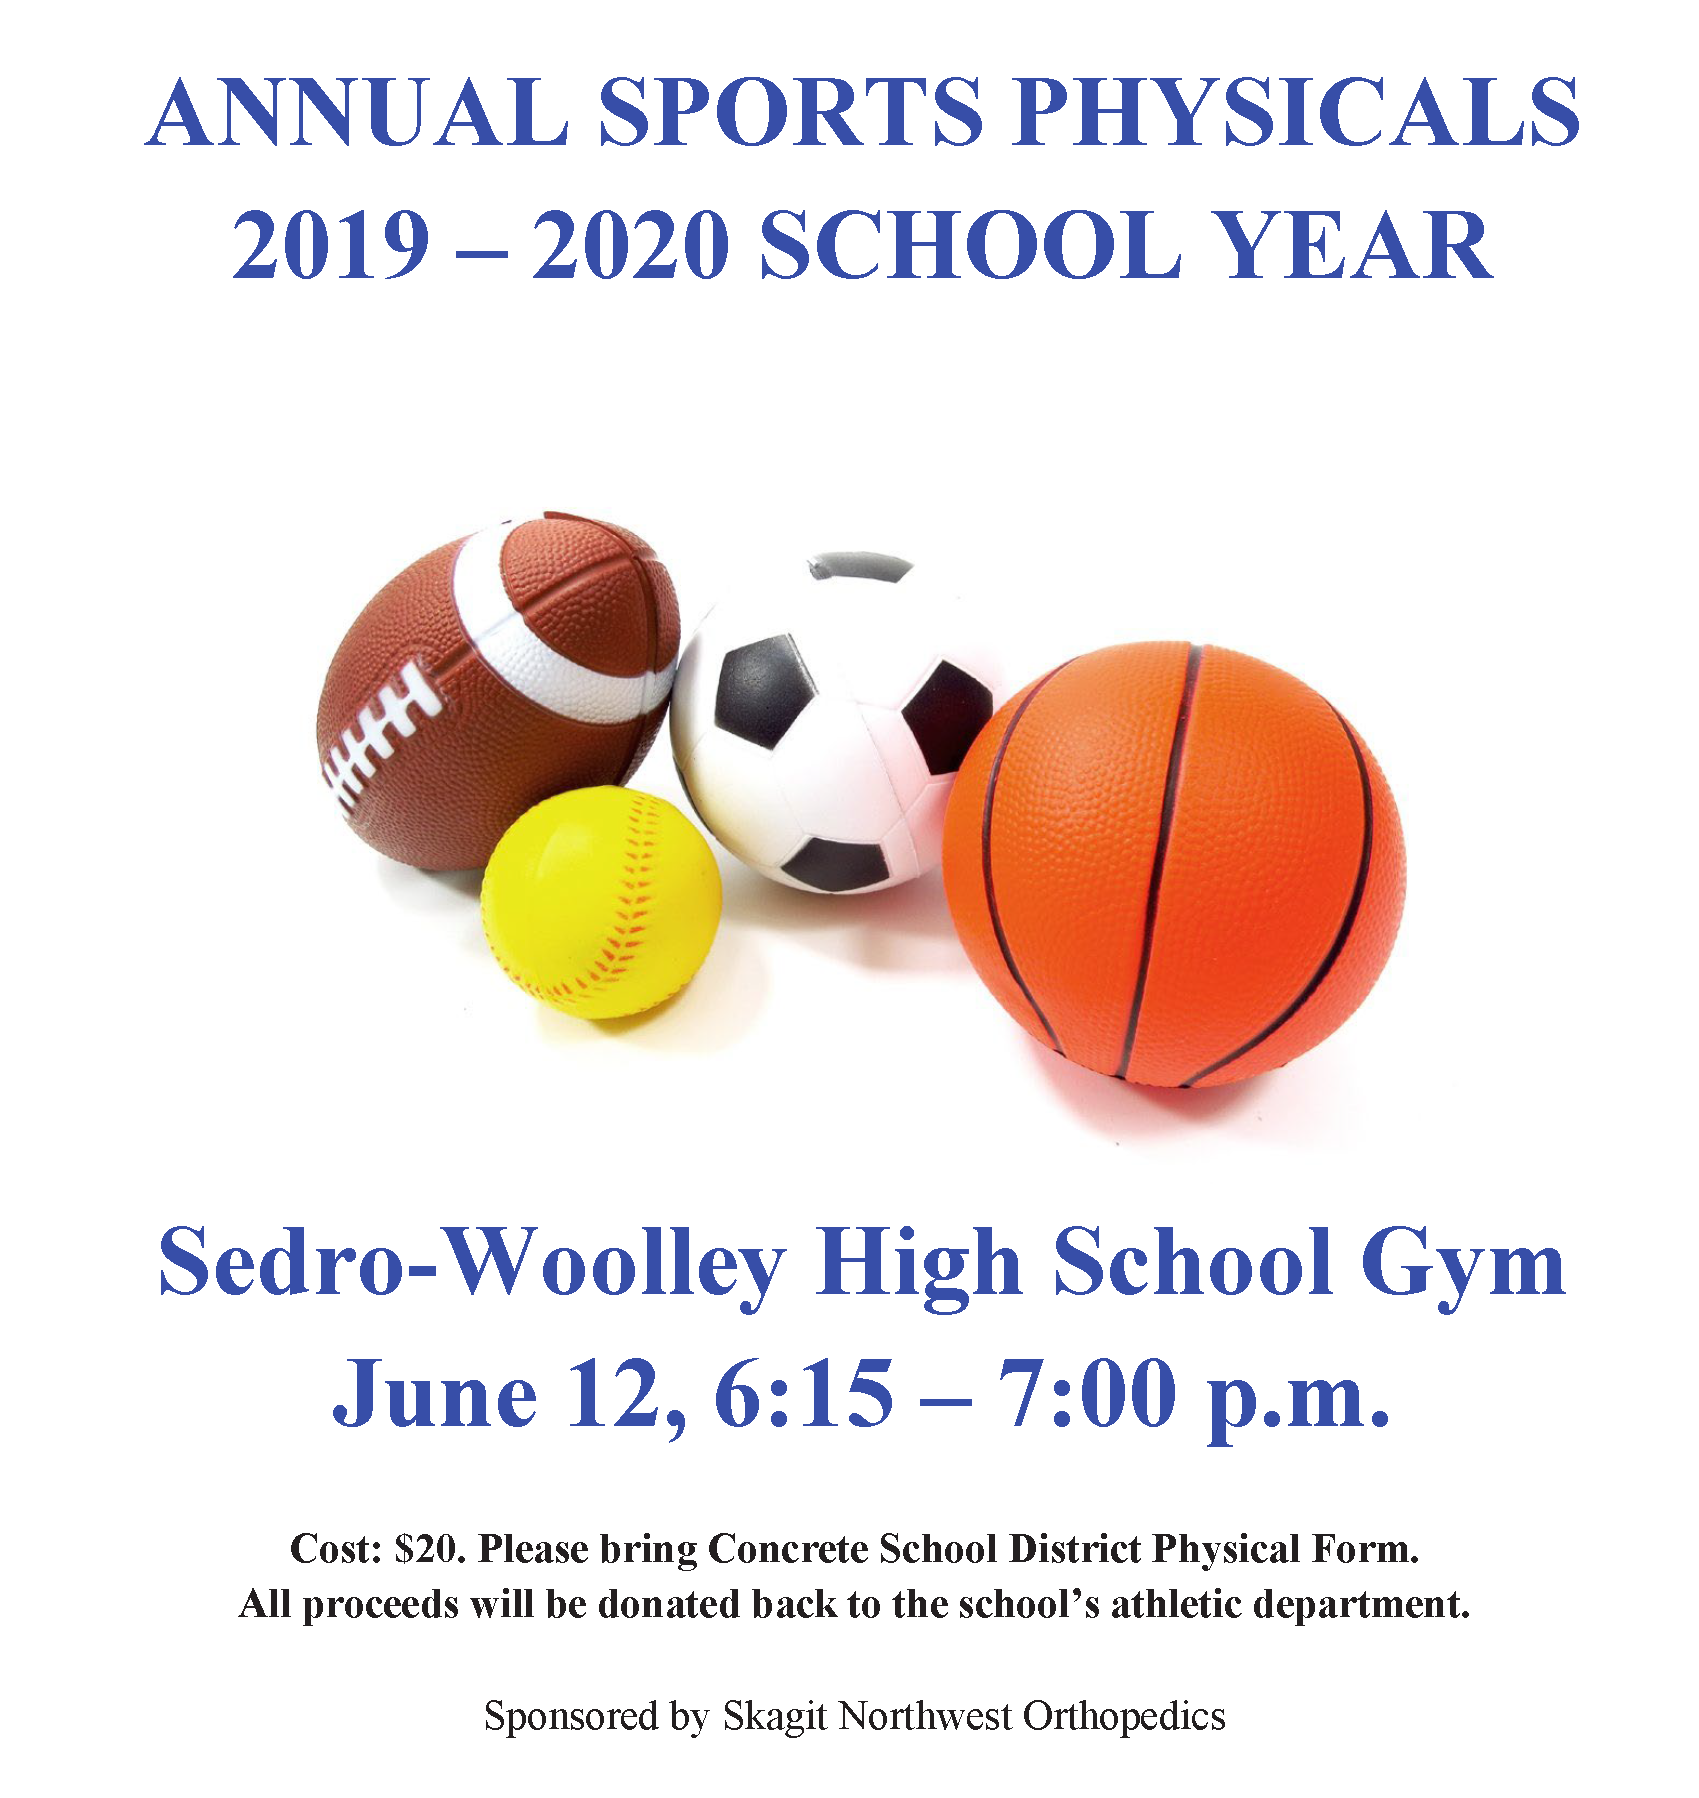 sports physical form 2019 wisconsin  Sports | Concrete School District